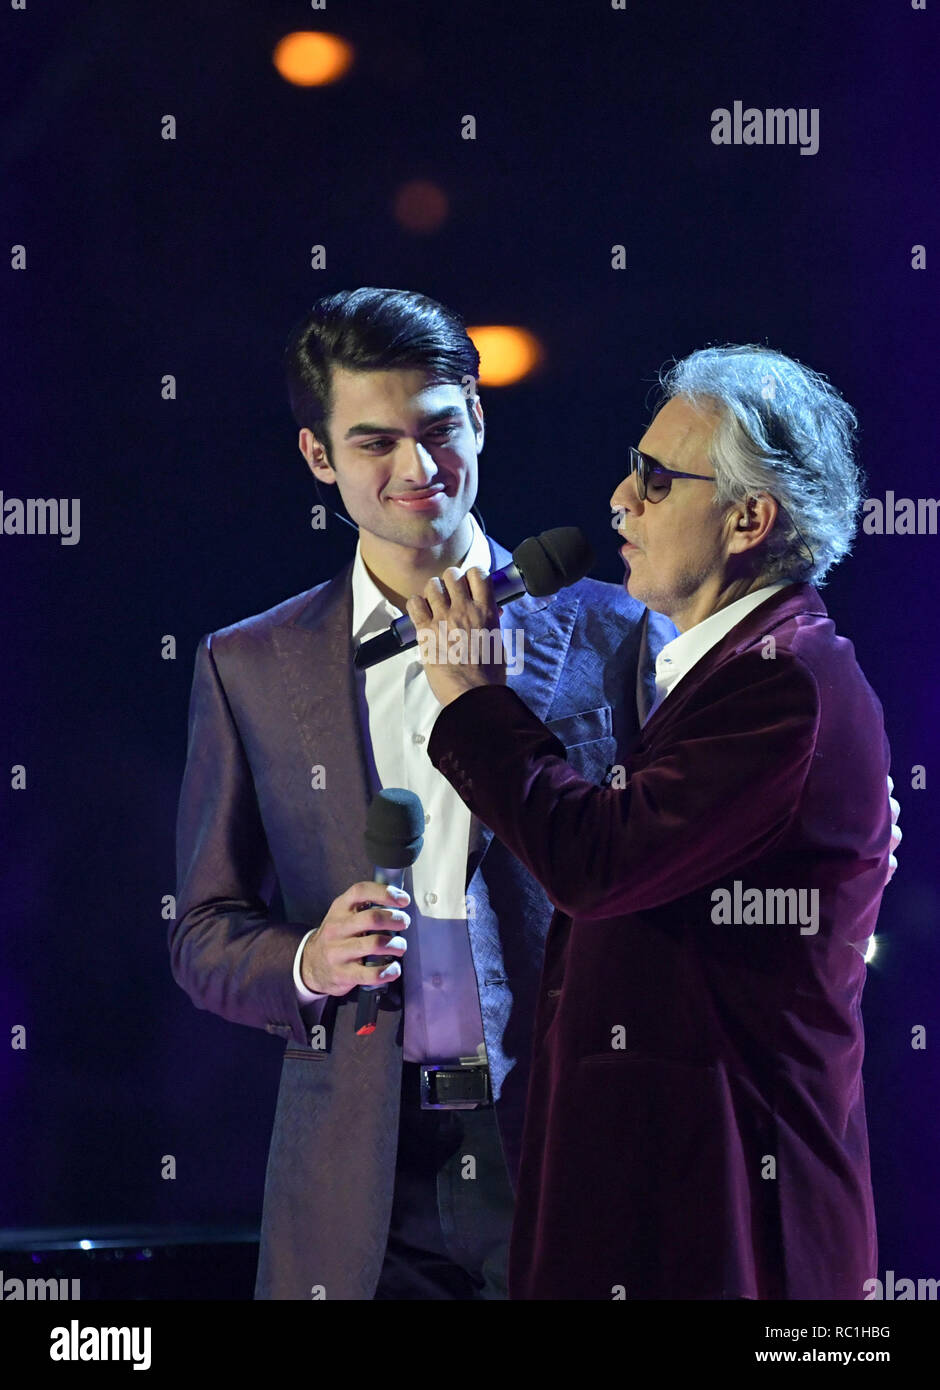 Berlin, Germany. 12th Jan, 2019. Schlagerchampions - The big party of the best, live show in the first. Andrea Bocelli (r) and his son Matteo Bocelli on stage. Credit: Jens Kalaene/dpa-Zentralbild/ZB/dpa/Alamy Live News - Stock Image